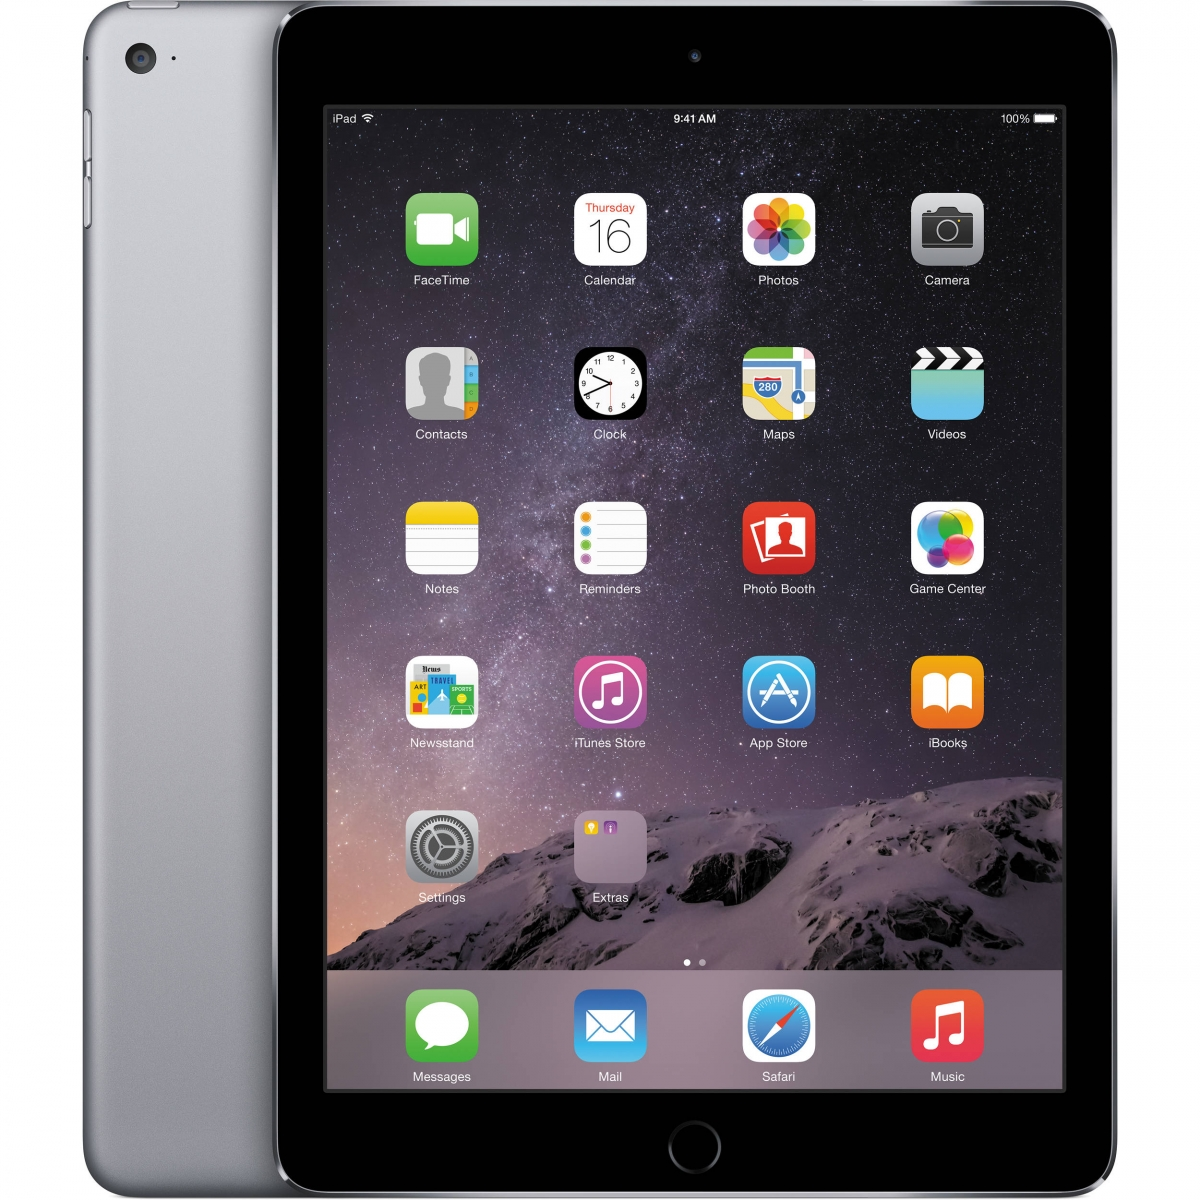 iPad Air Wi-Fi in Space Grey